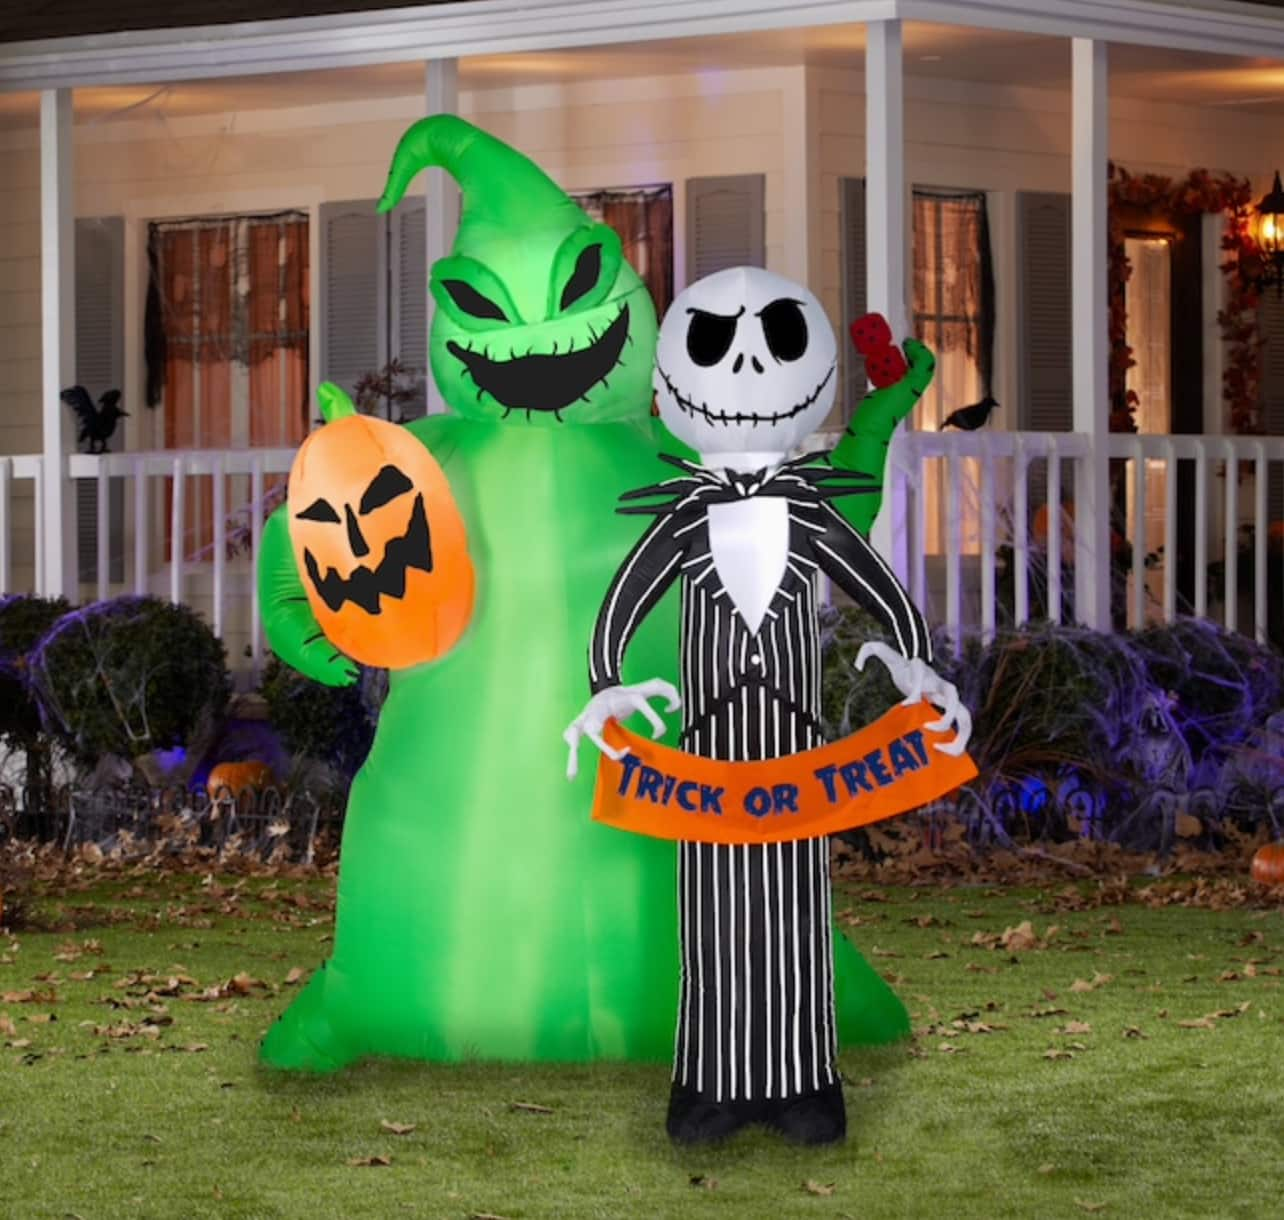 Halloween Decorations Guide: What you will find at Home Depot, Lowe's, Walmart, and Amazon in 2021